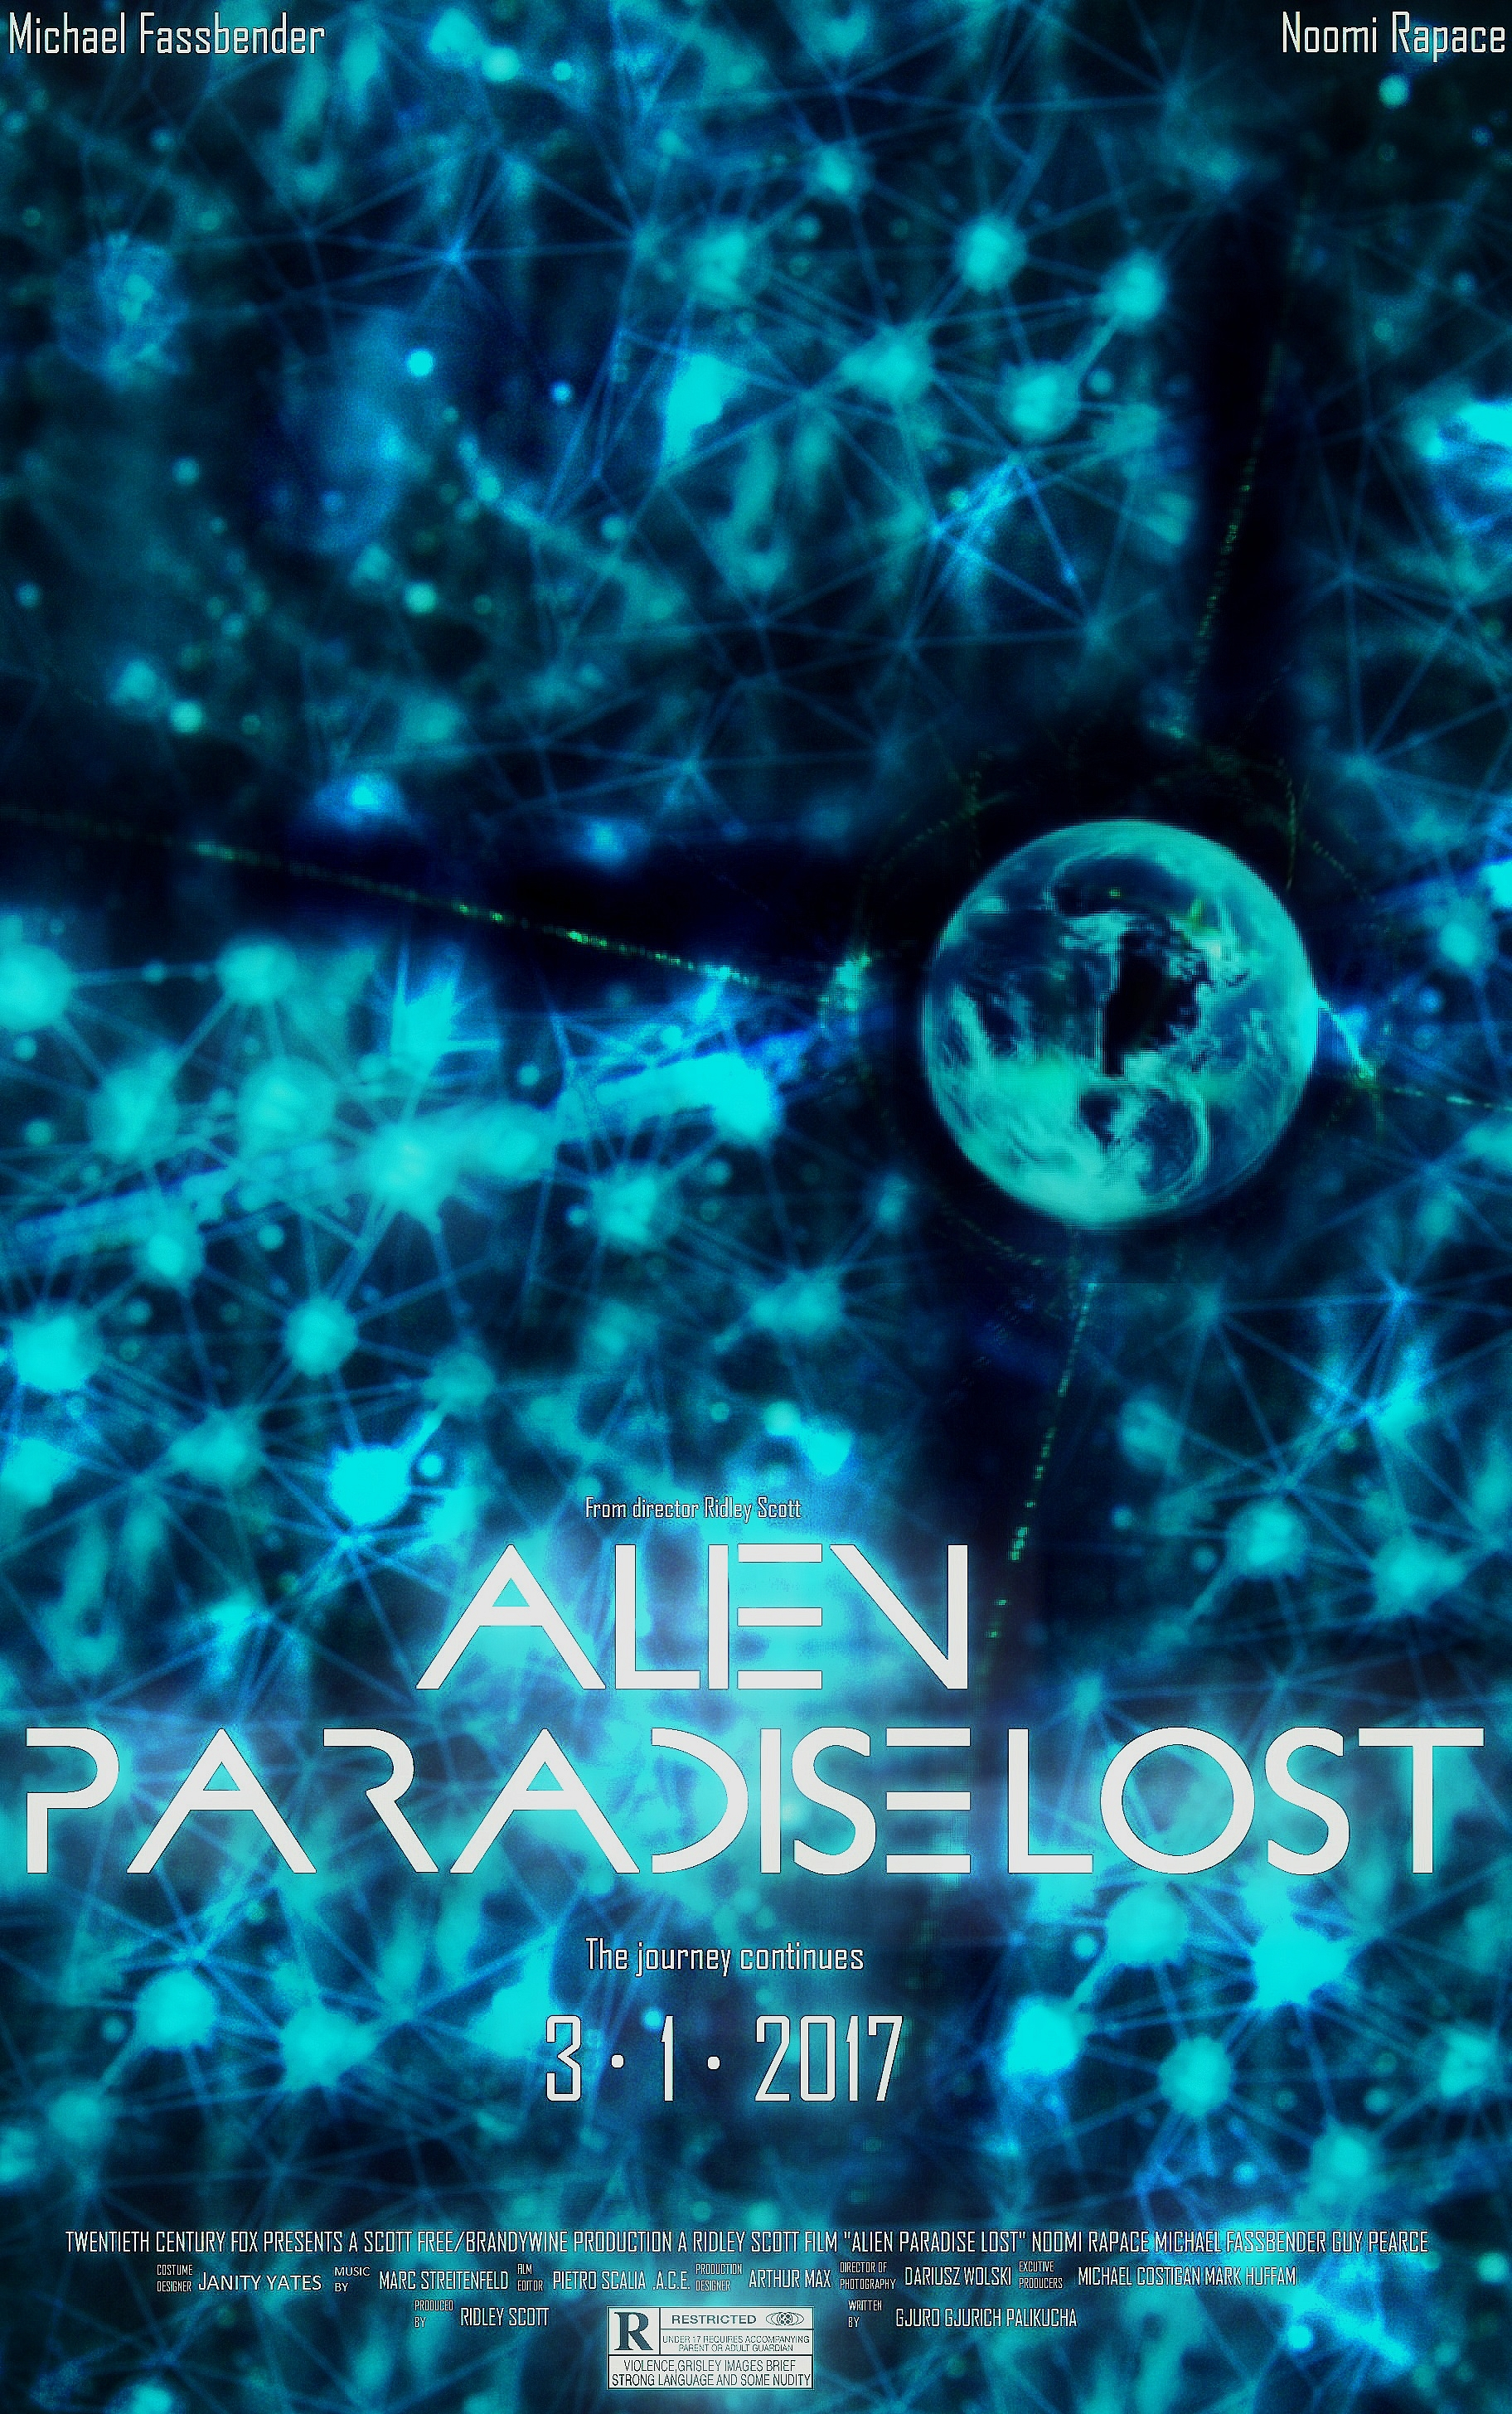 alien_paradise_lost_third_poster_by_scpmaniac34-d9cdi7j